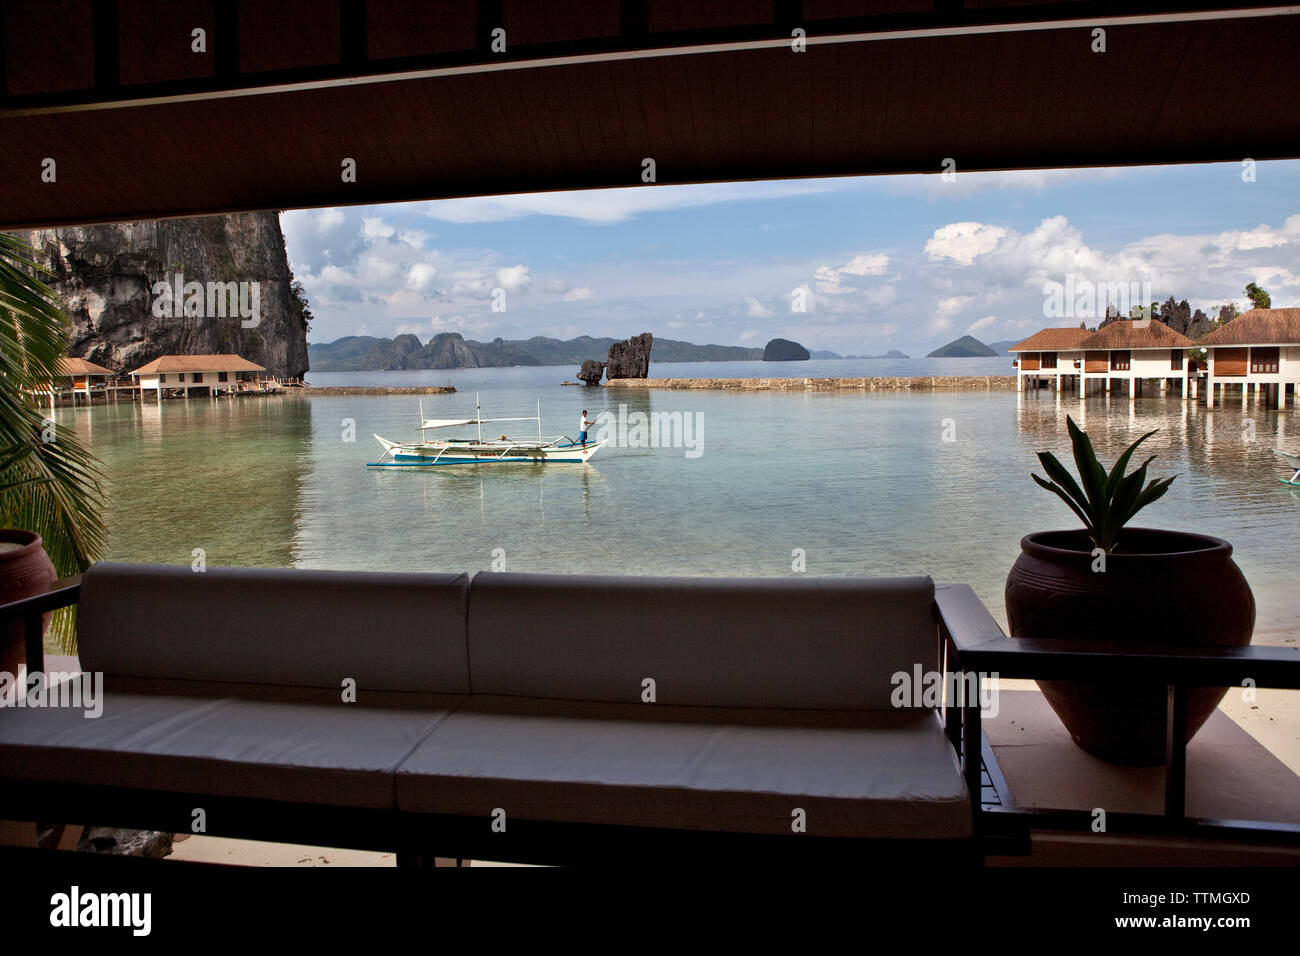 PHILIPPINES, Palawan, El Nido, Lagen Island, cottage room view at Lagen Island Resort, Bacuit Bay in the South China Sea - Stock Image